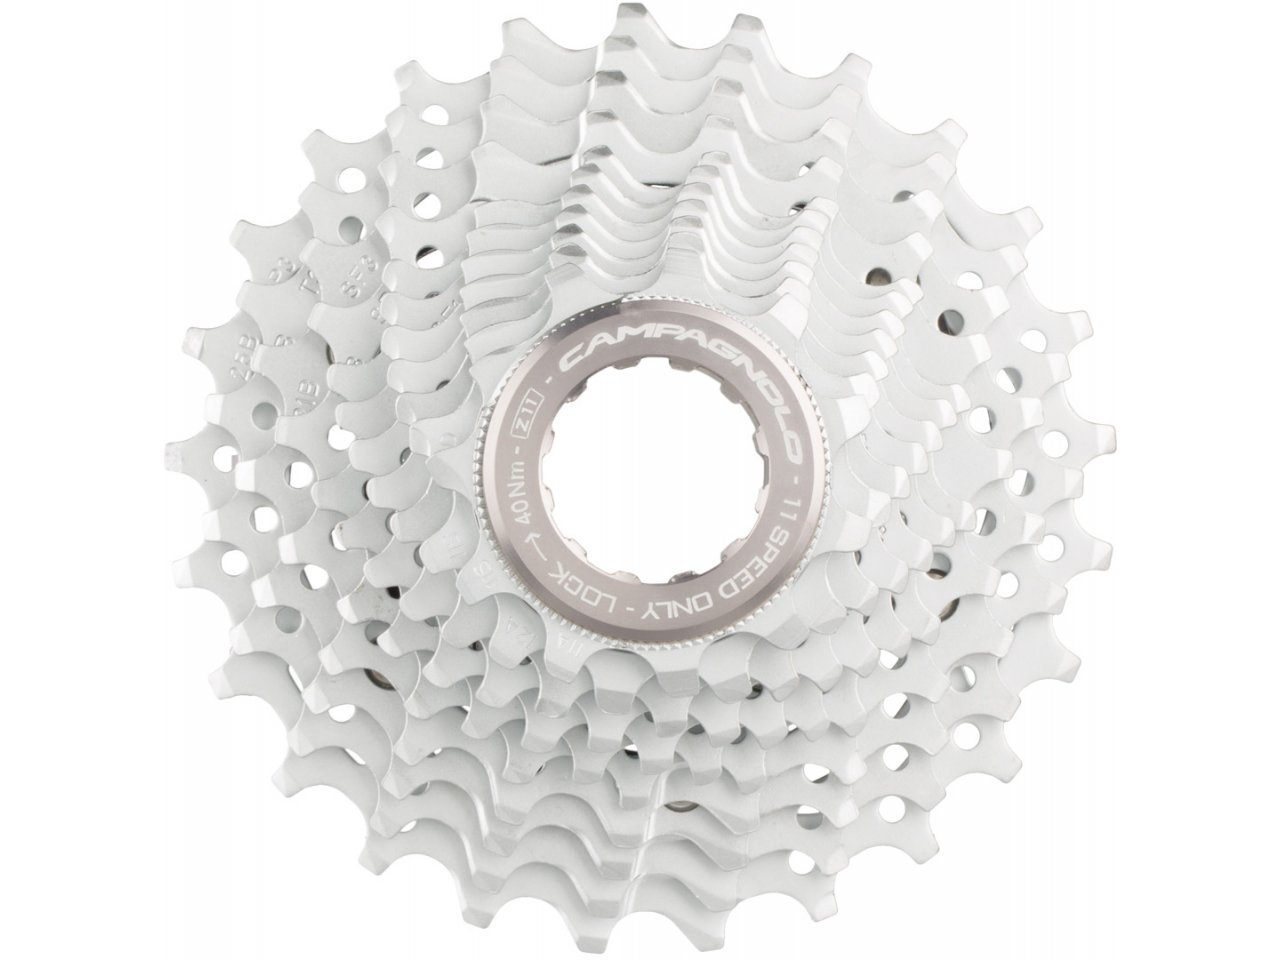 Campagnolo Chorus Cassette 11 Speed 11-25